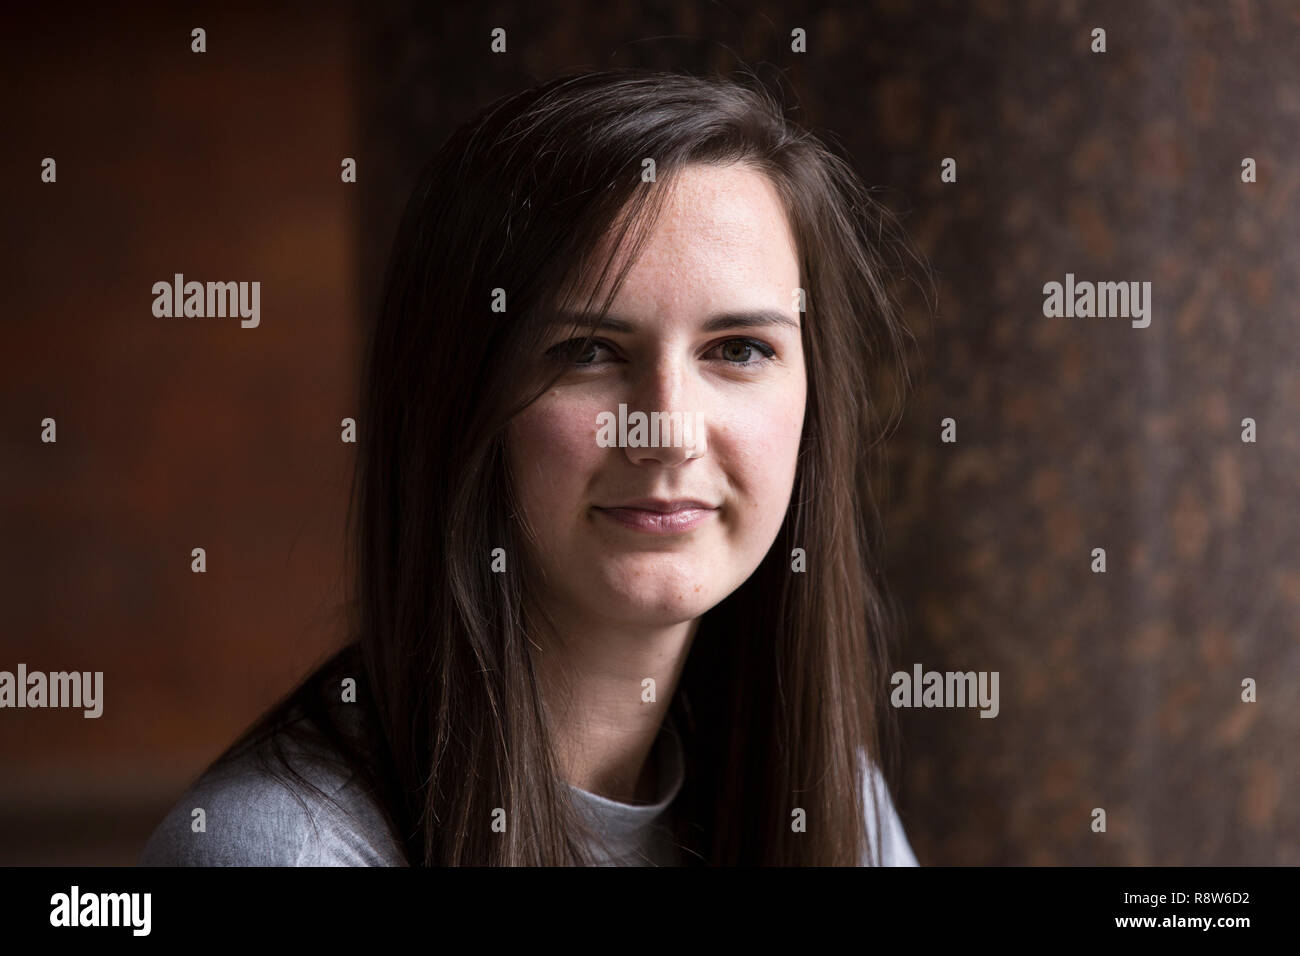 Hannah Anderson, founding member of The Social Chain Group  and director of media, creative and brand strategy at Media Chain, photographed in London. - Stock Image